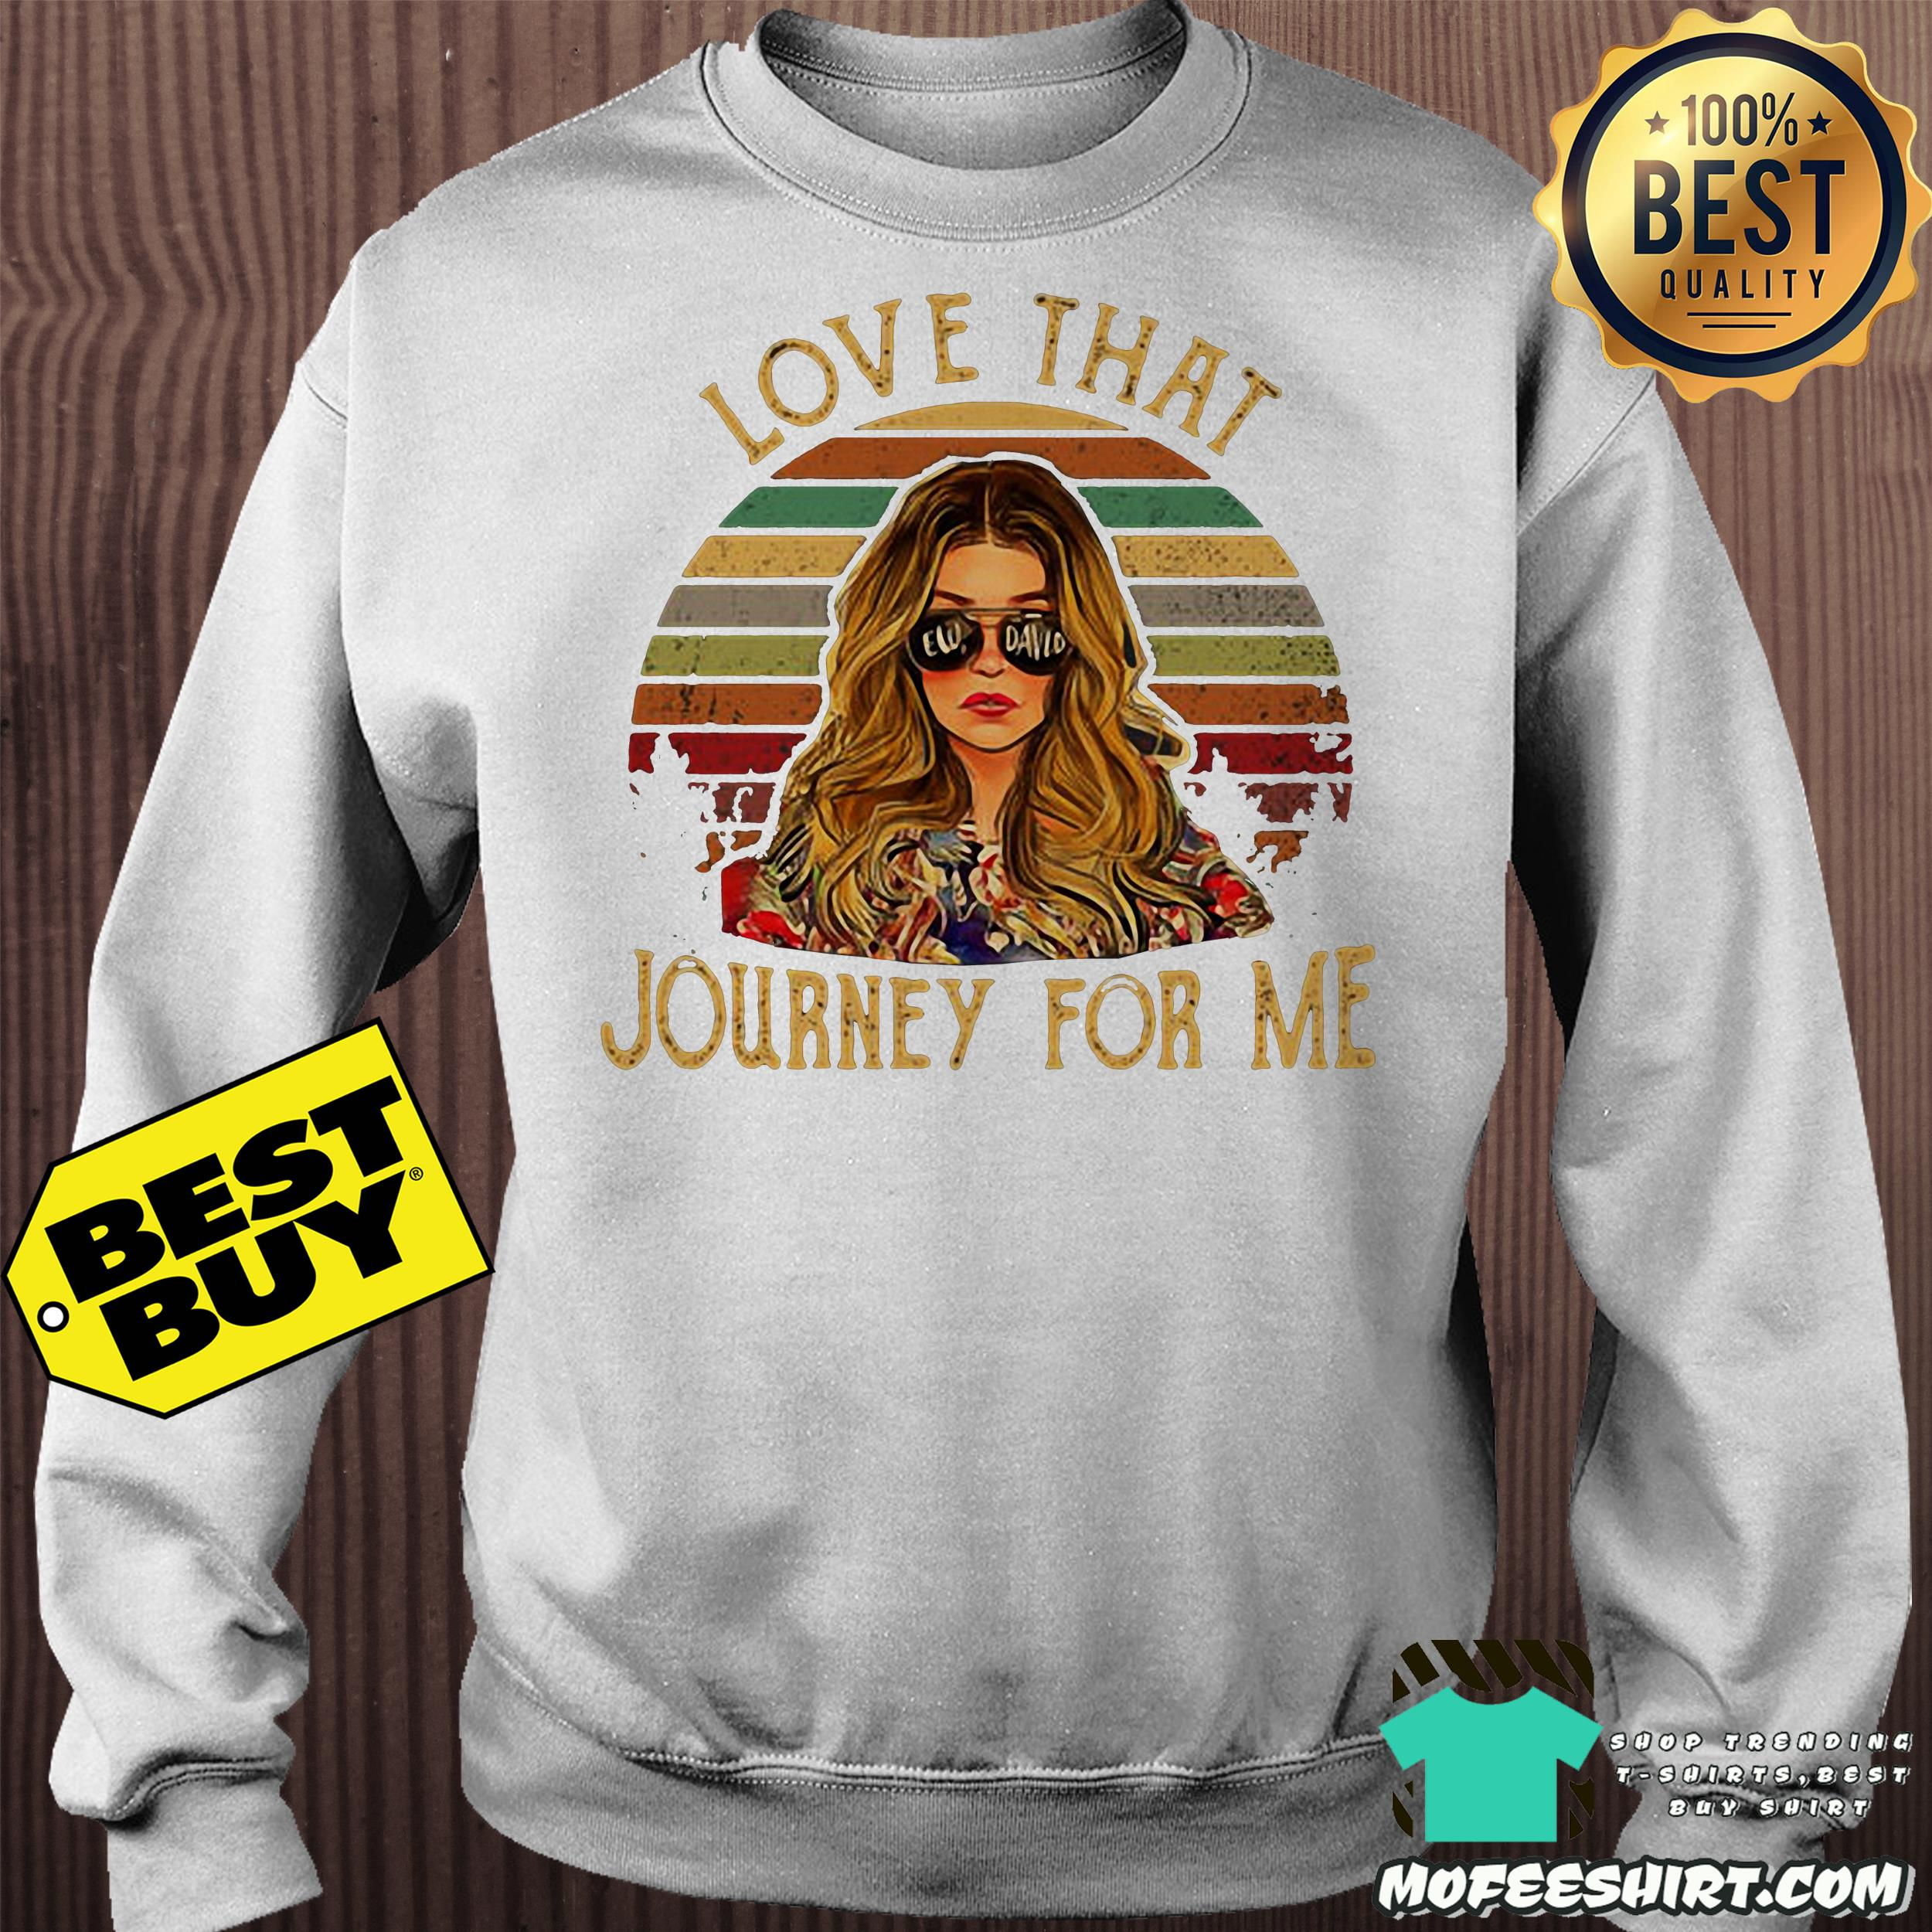 9 1 - Ew David love that Journey for me vintage shirt